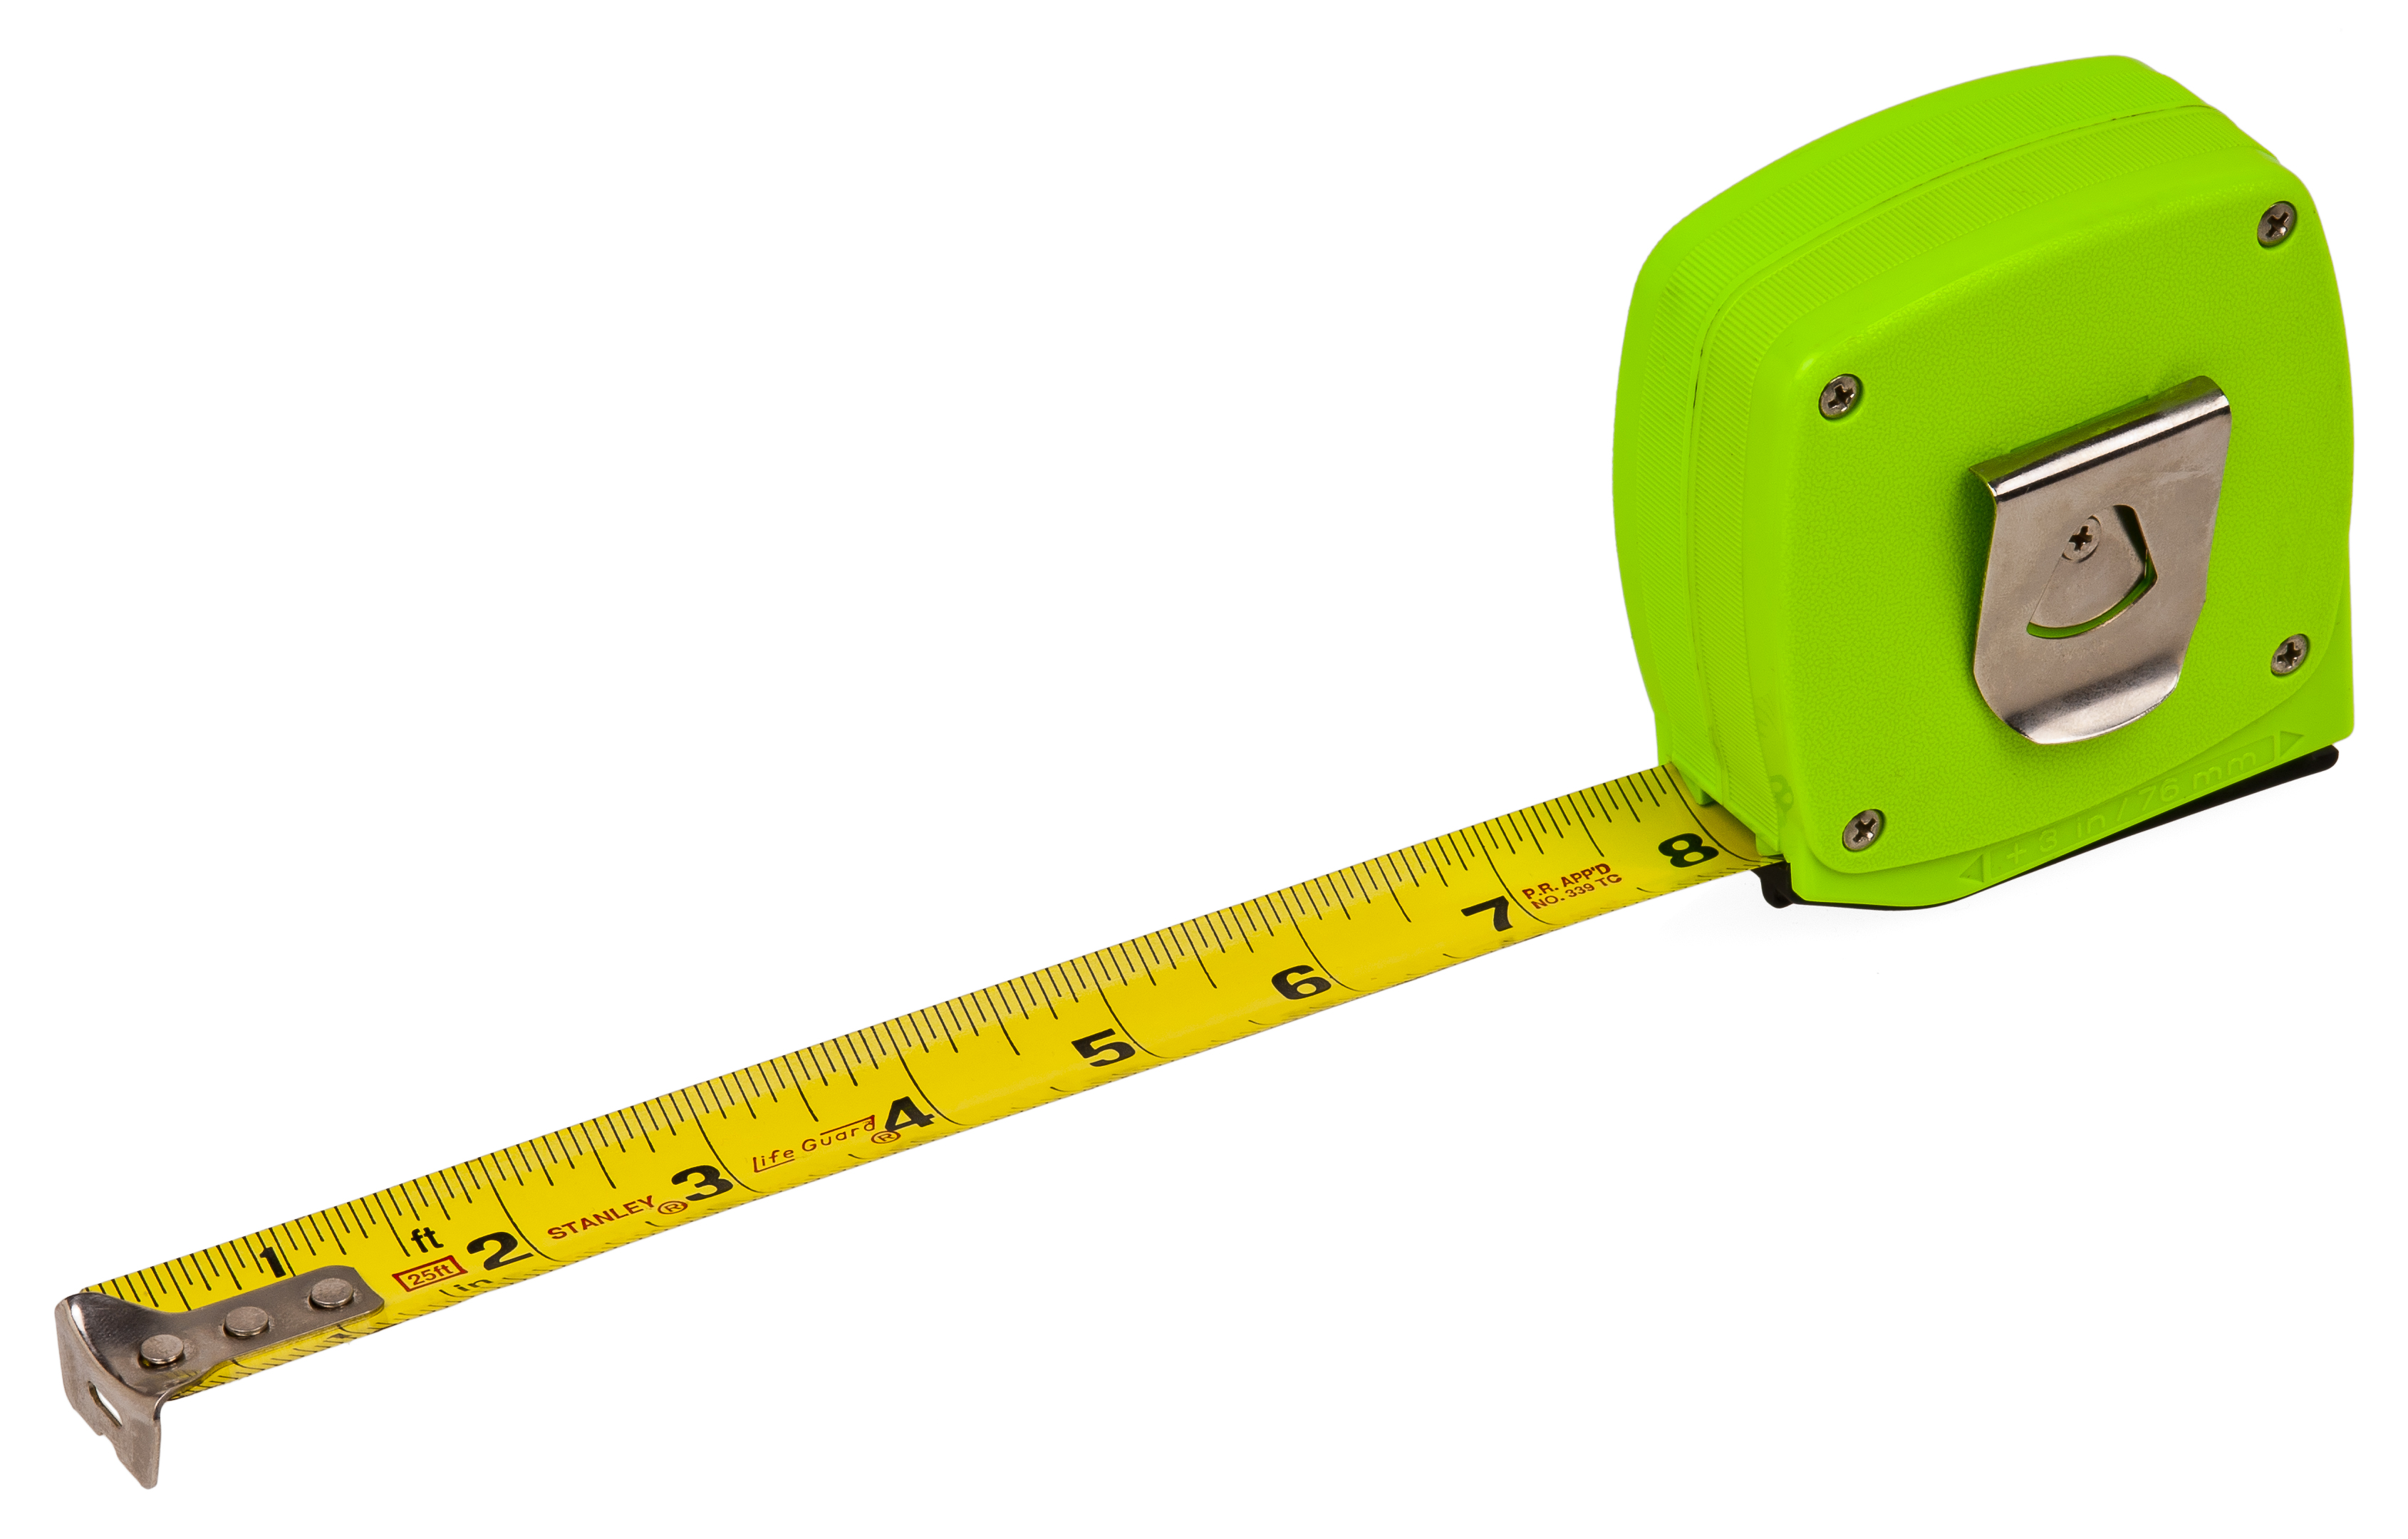 Image result for measuring tape